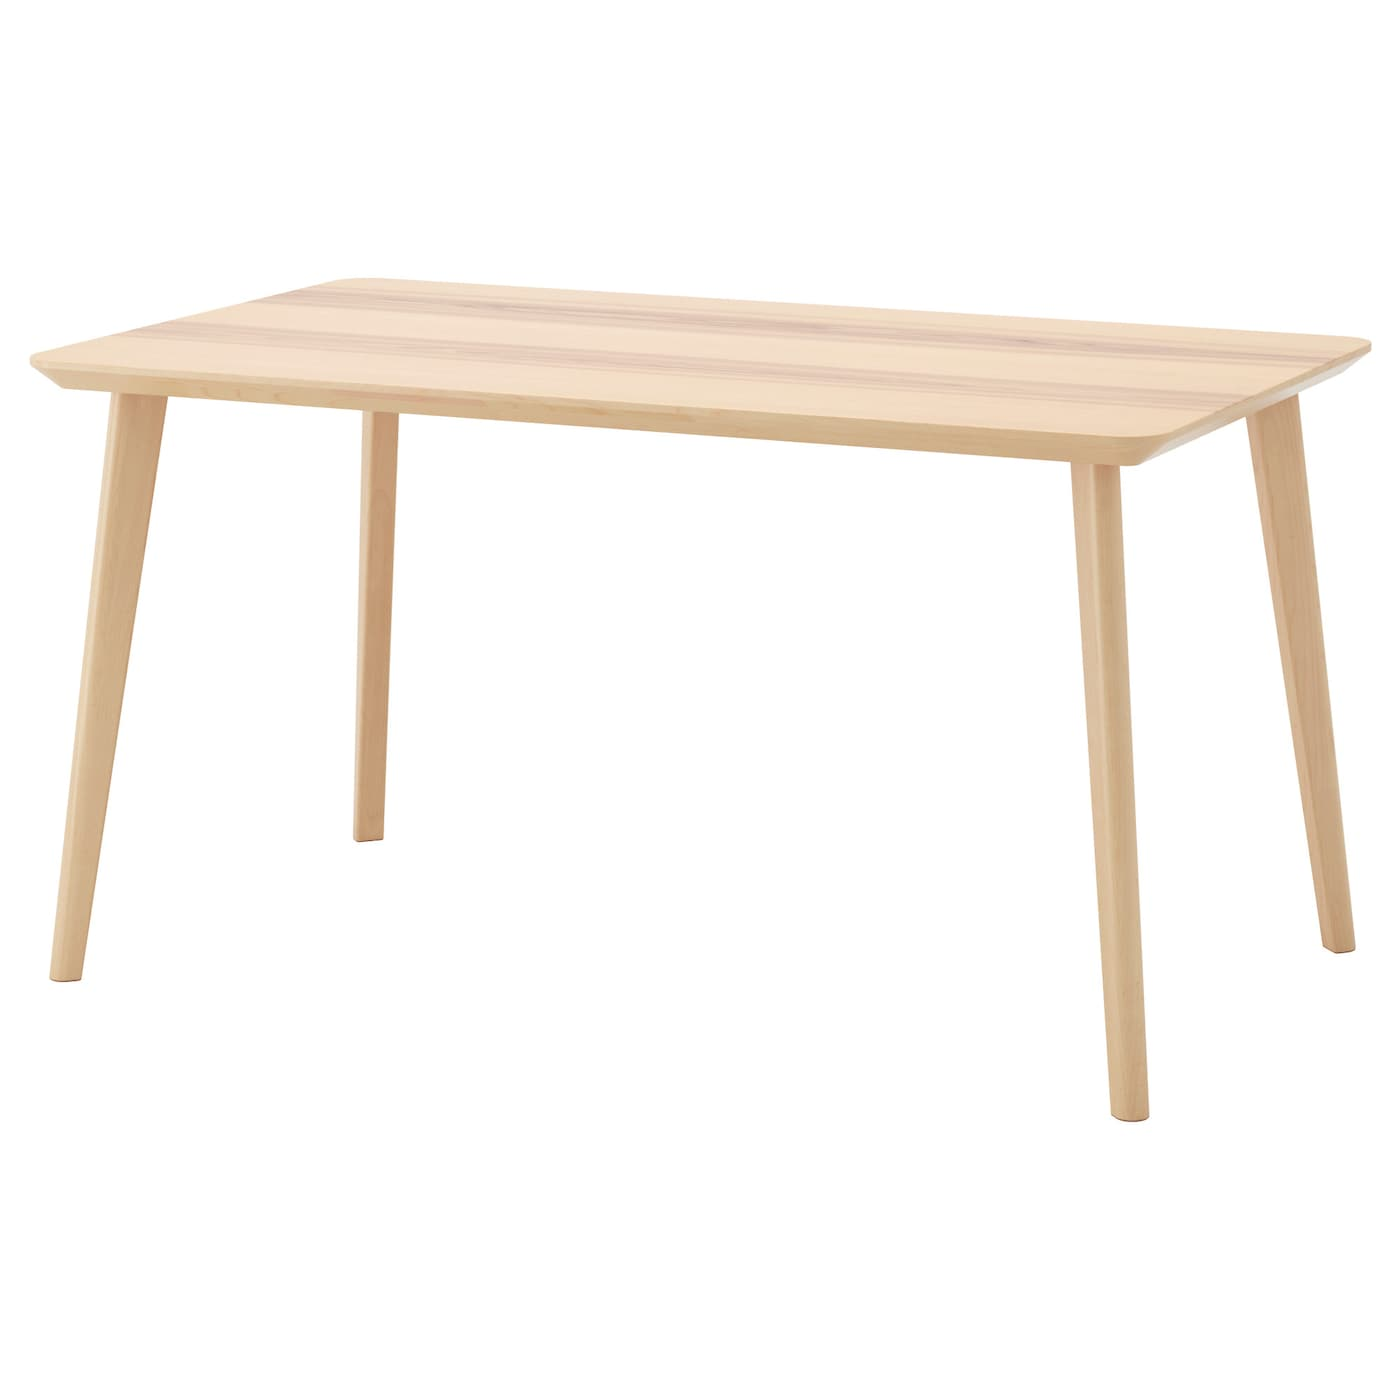 Lisabo table ash veneer 140x78 cm ikea - Table a roulettes ikea ...